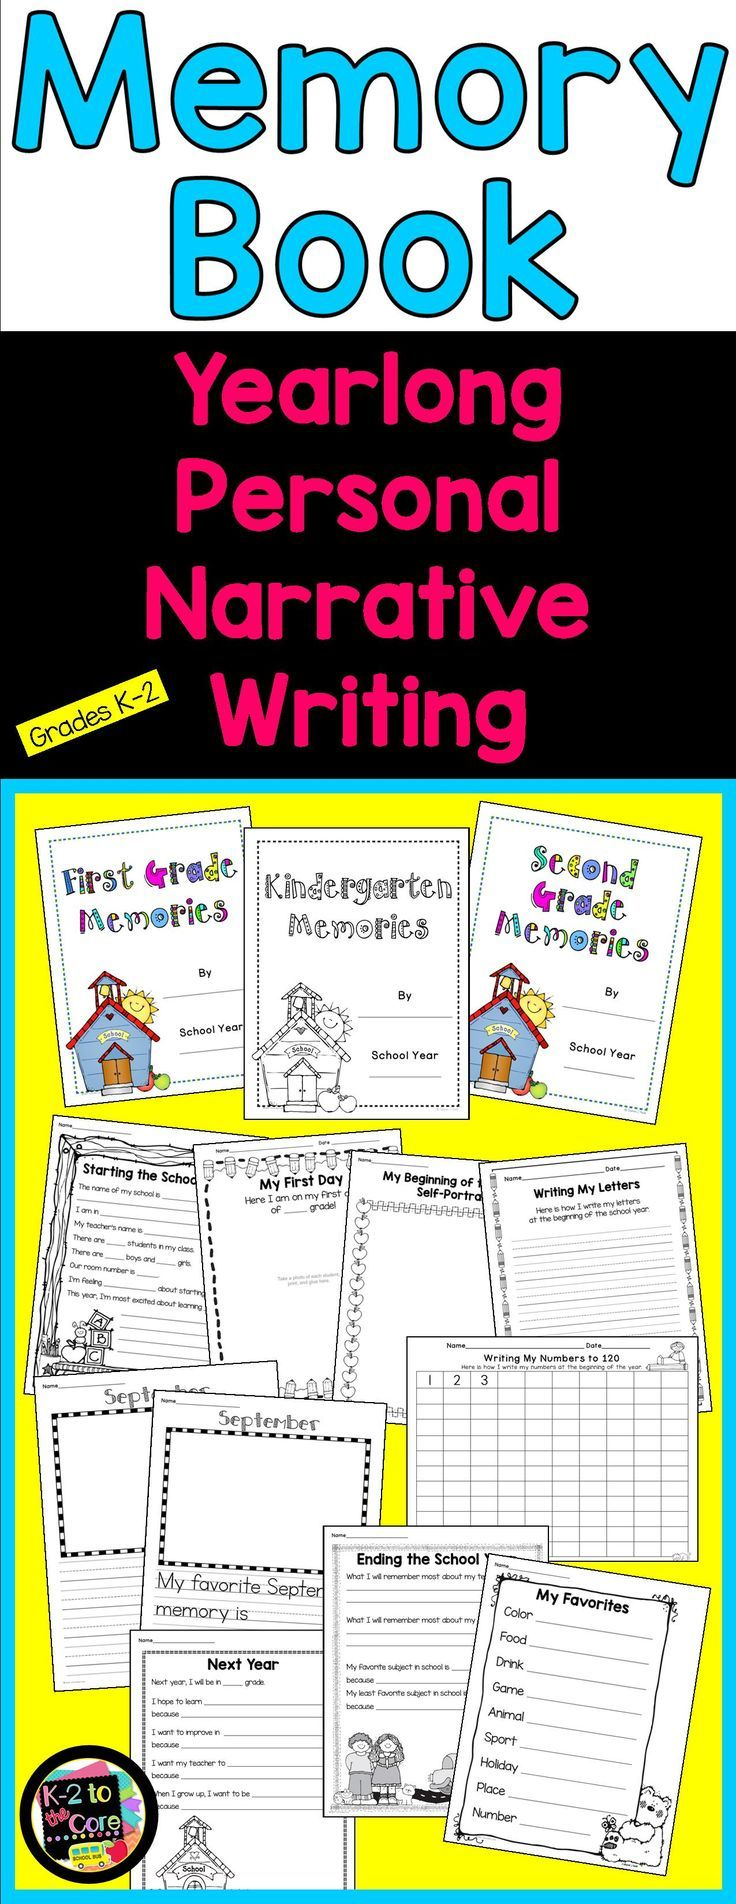 While creating a precious keepsake, this yearlong memory book project will guide you in teaching your K-2 students how to write personal narrative paragraphs. They'll learn the process of brainstorming ideas, choosing one, filling in a graphic organizer (web), and then writing a paragraph including a topic sentence, detail sentences, and a closing sentence.